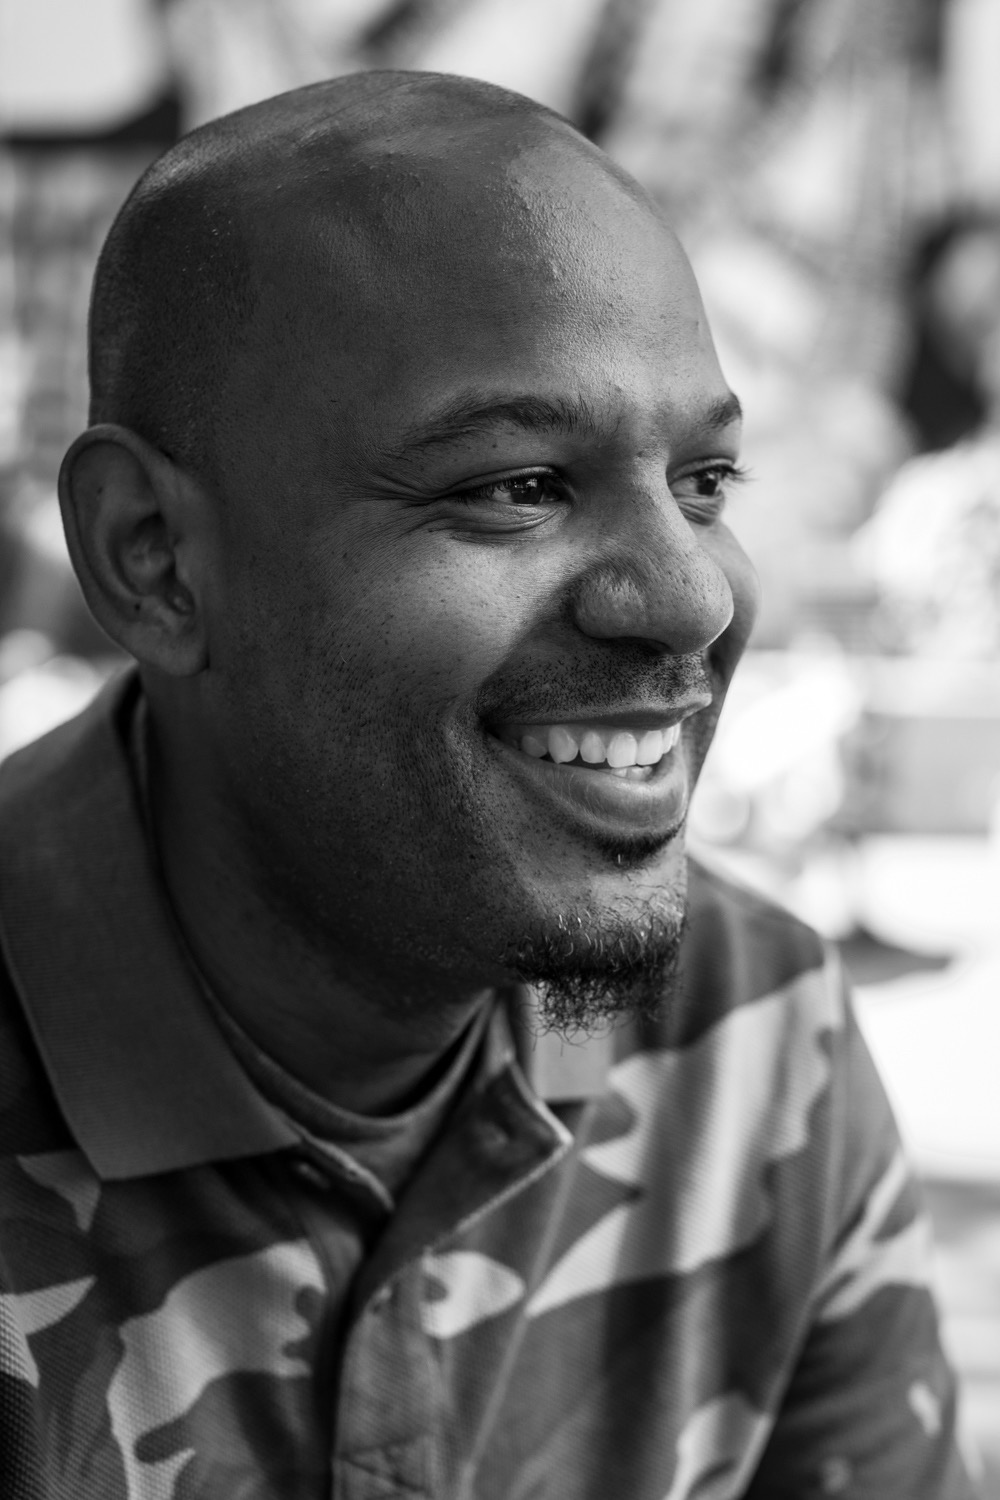 Anthony Demby | Humbleriot   Anthony Demby is the Founder of the Cultural Consultancy  Humbleriot . He is story teller and plays in the spaces of music curation, cultural programming, & social impact and thrives on creating transformative experiences and narratives that resonate with the soul.